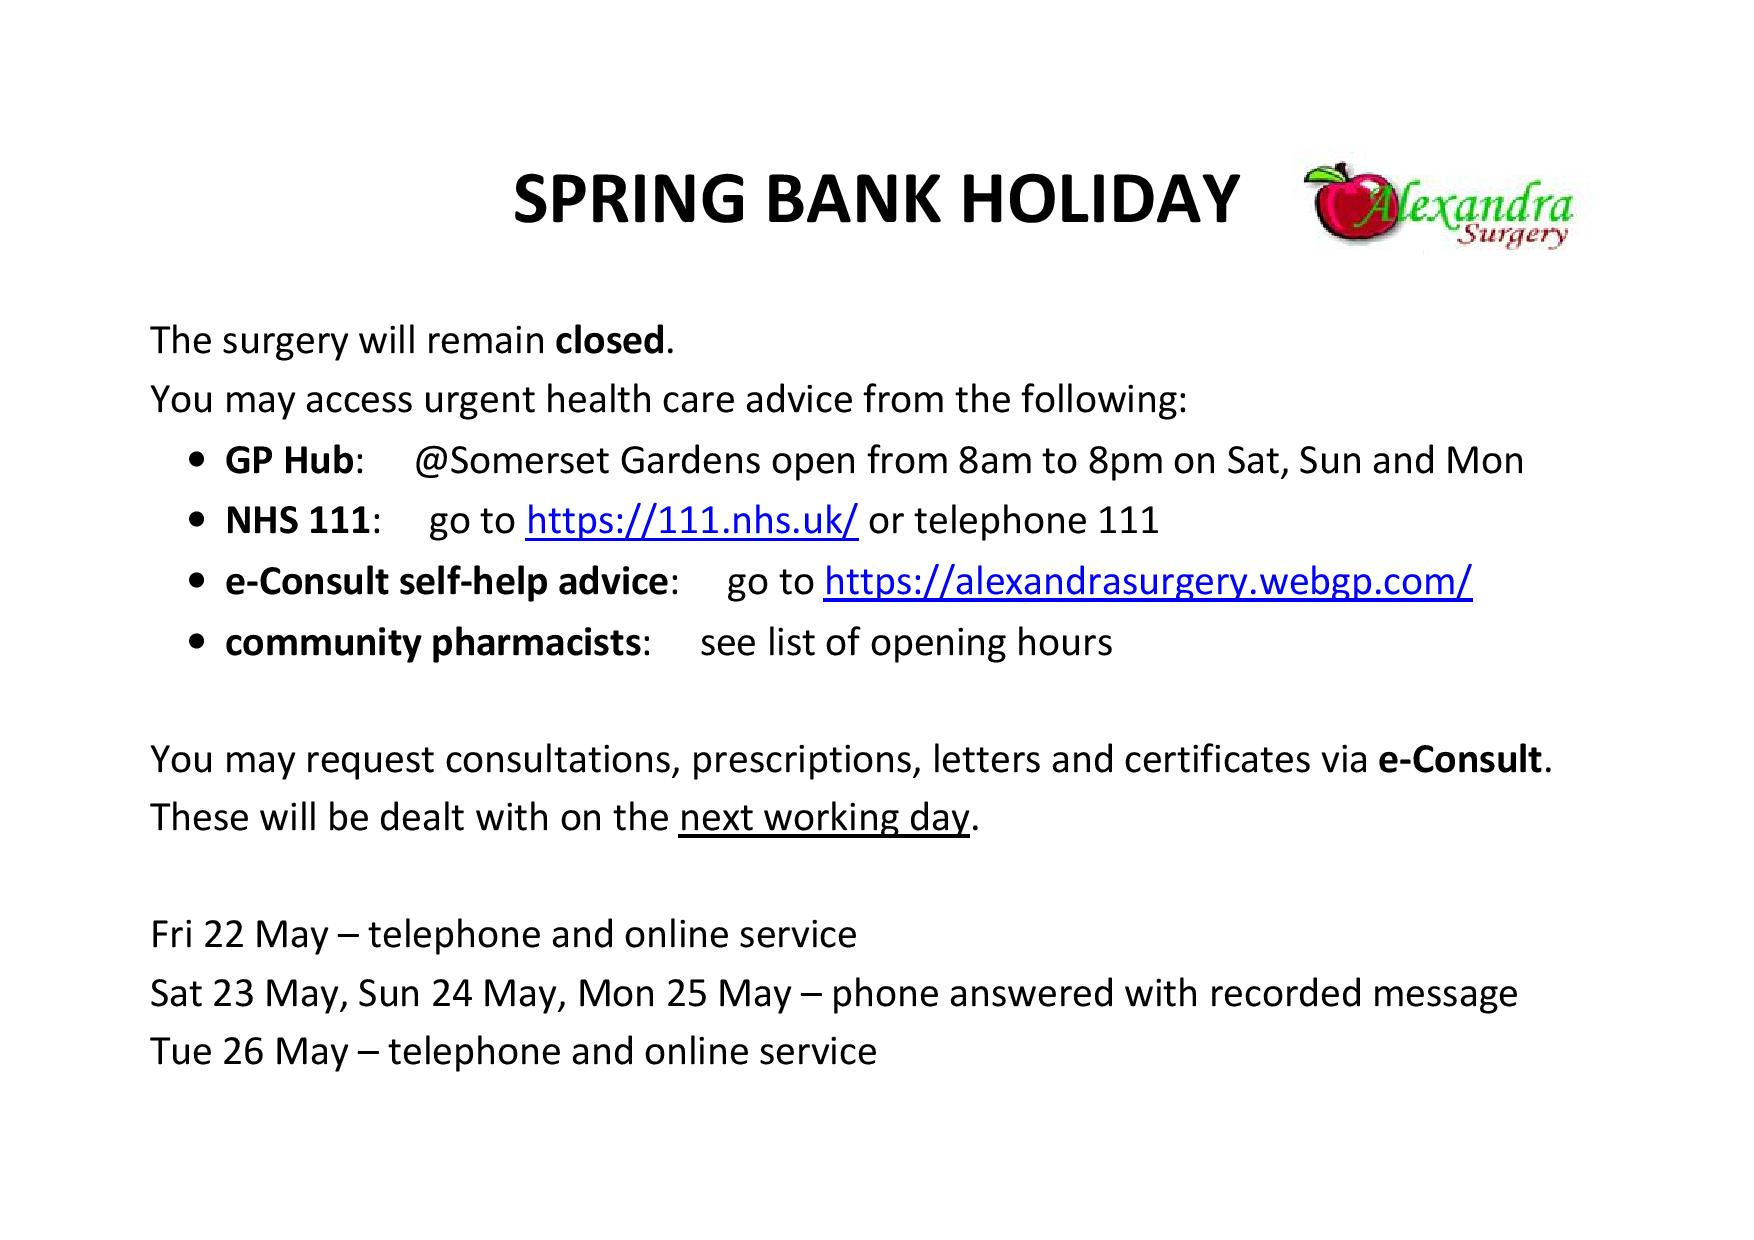 Spring bank holiday 2020 closed